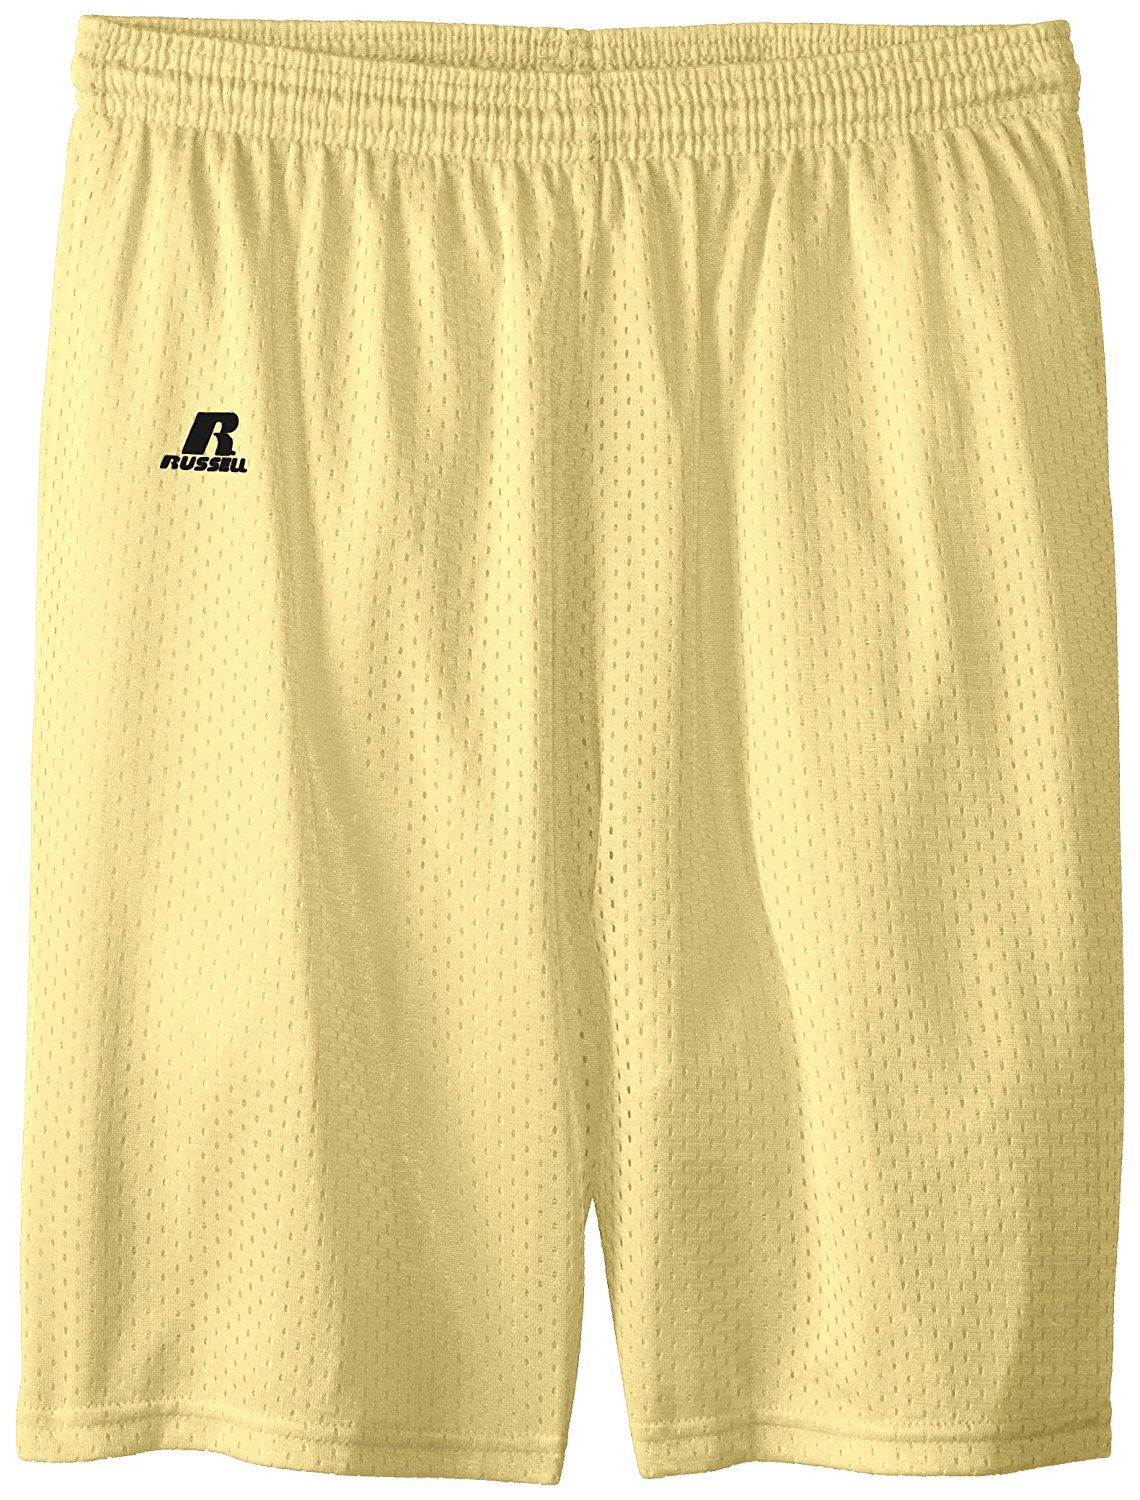 Russell Athletic Youth Mesh Shorts